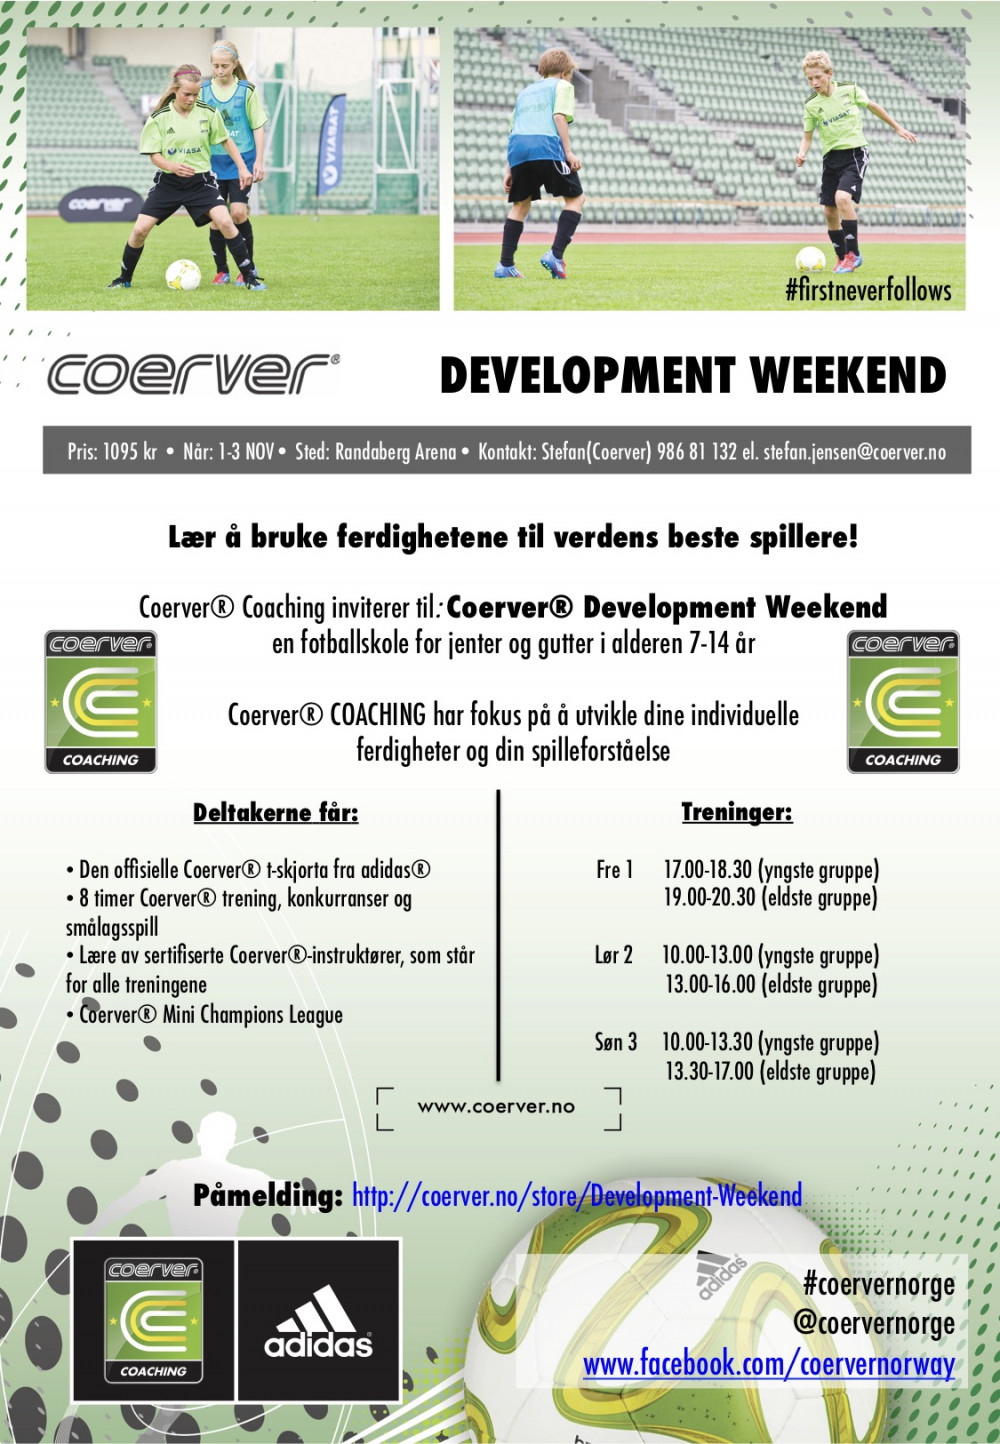 Development Weekend i Randaberg Arena 1-3 NOV